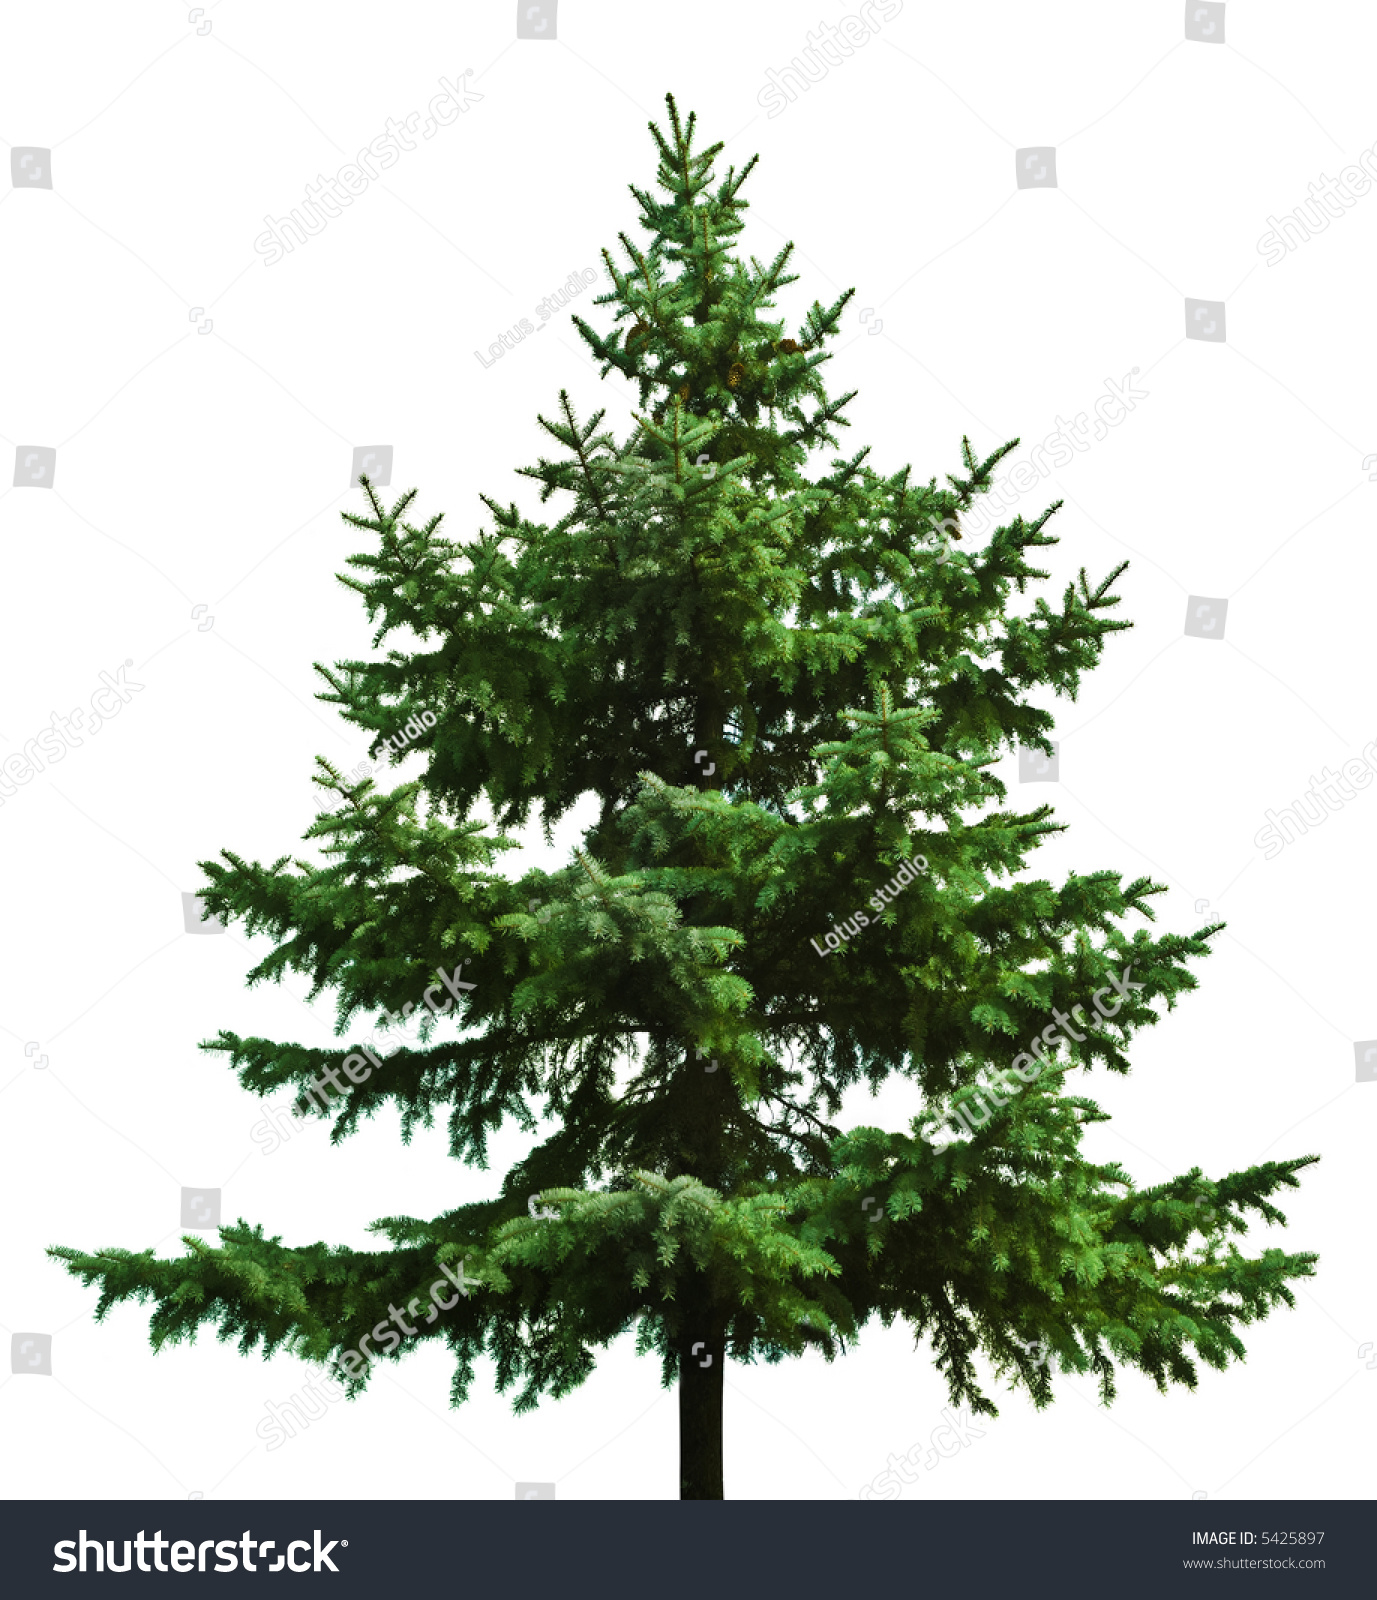 The Bare Christmas tree ready to decorate #5425897